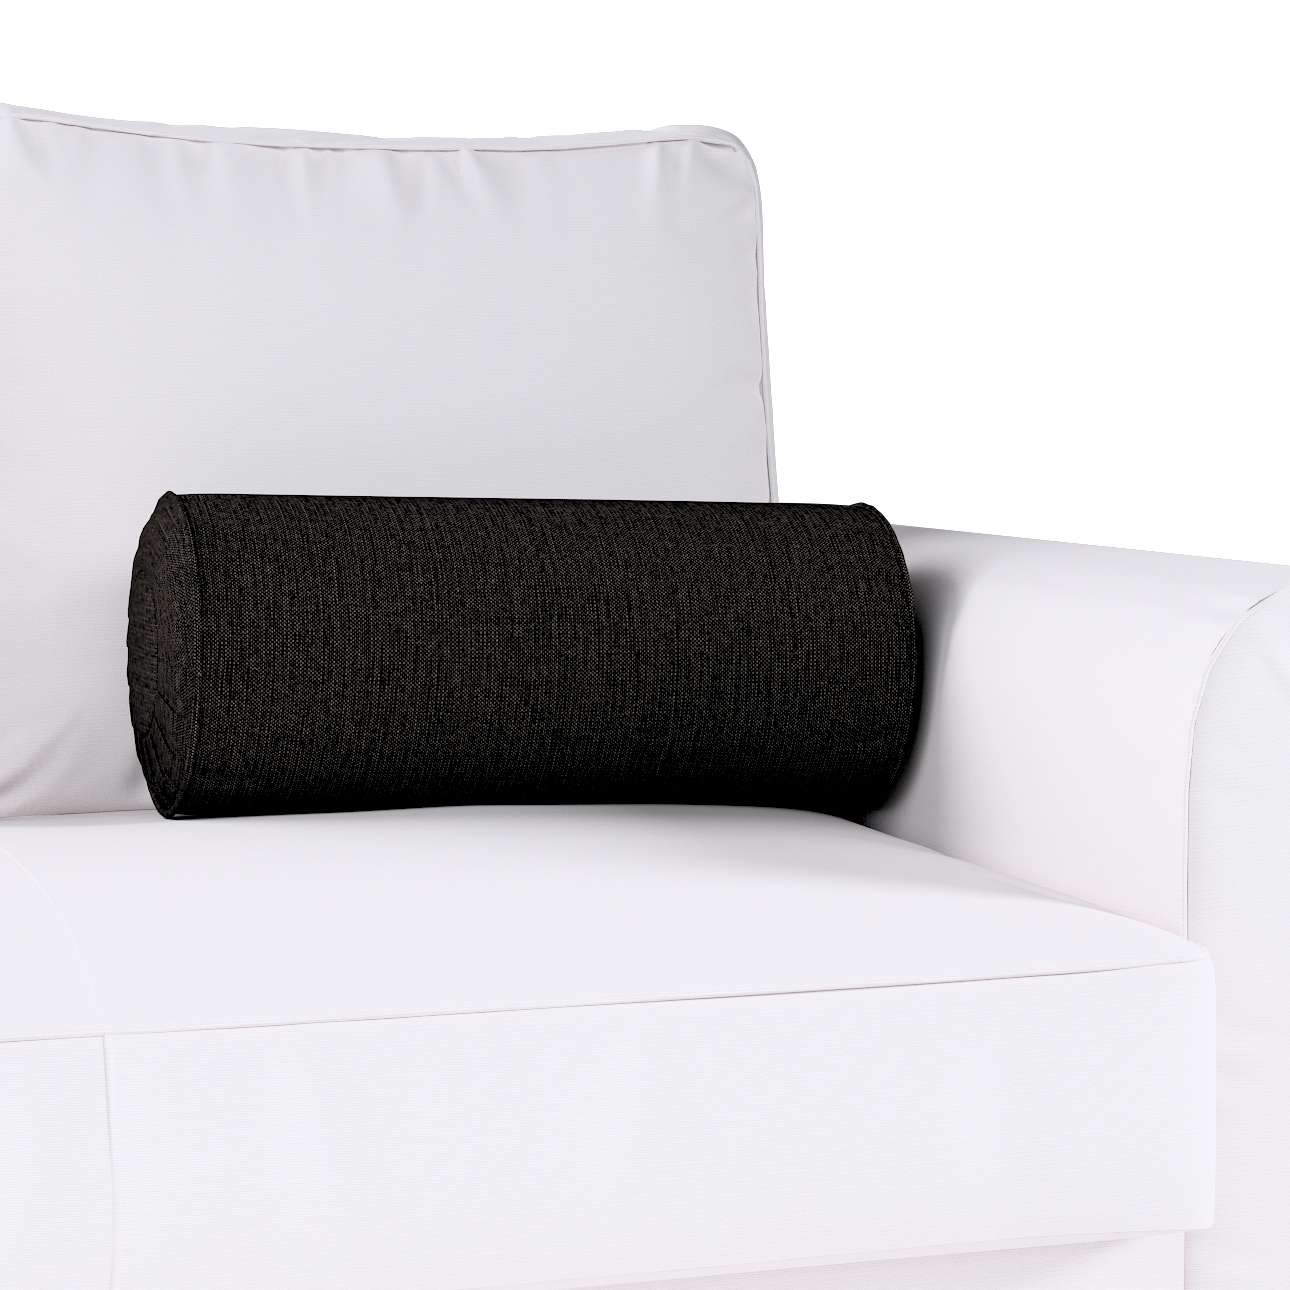 Bolster cushion with pleats in collection Madrid, fabric: 105-17